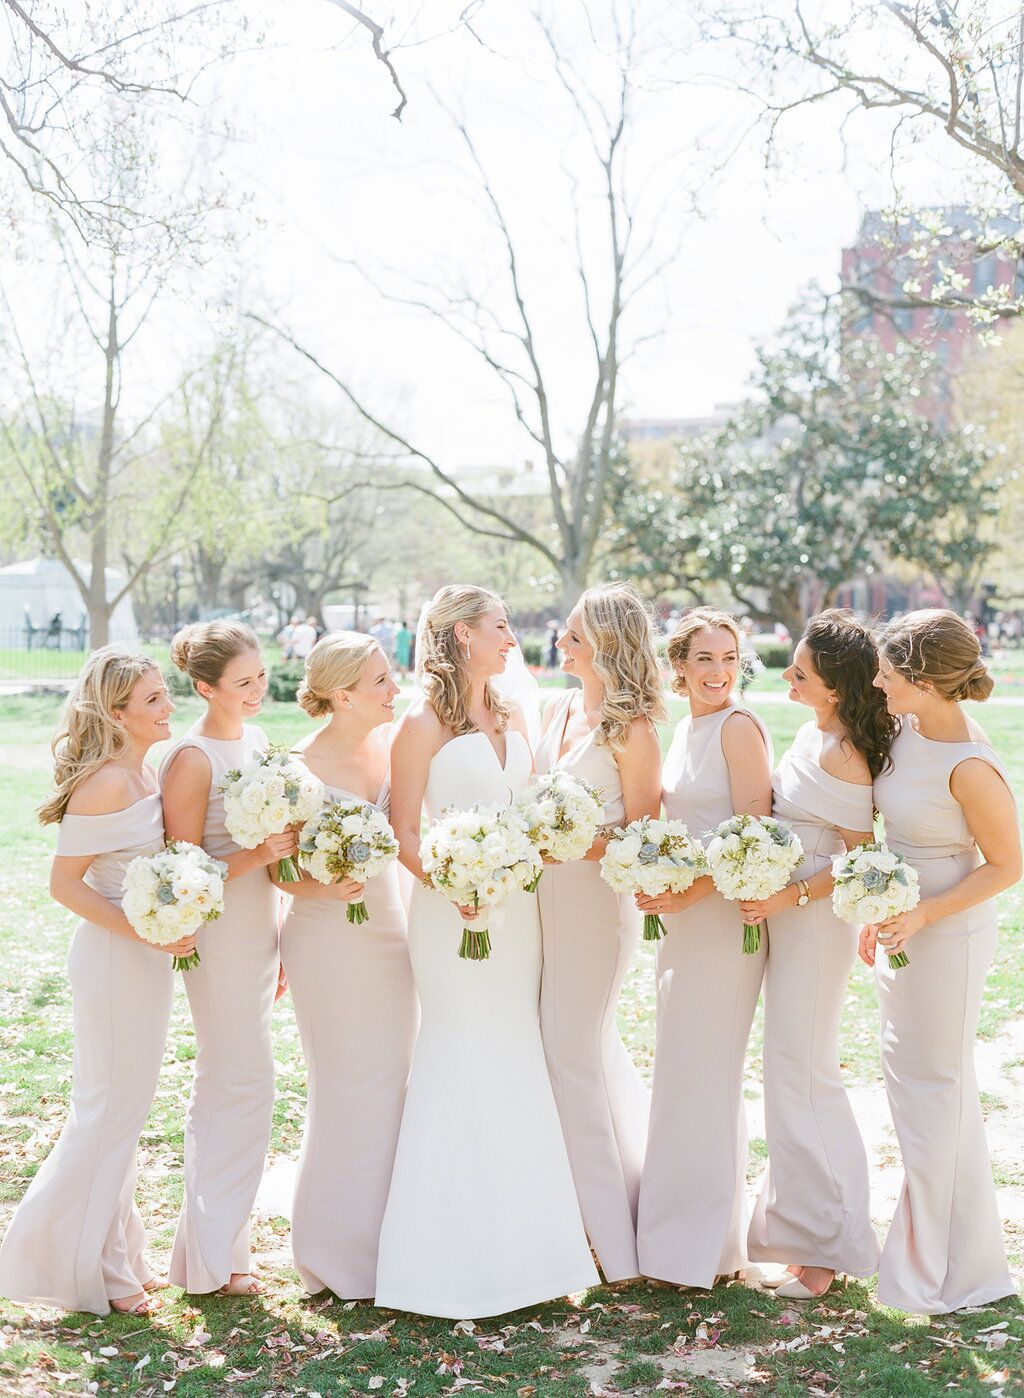 Tan Bridesmaid Dresses With Tight Textured Cream Bridal Party Florals At The National Mus Tan Bridesmaids Tan Bridesmaid Dresses Champagne Bridesmaid Dresses